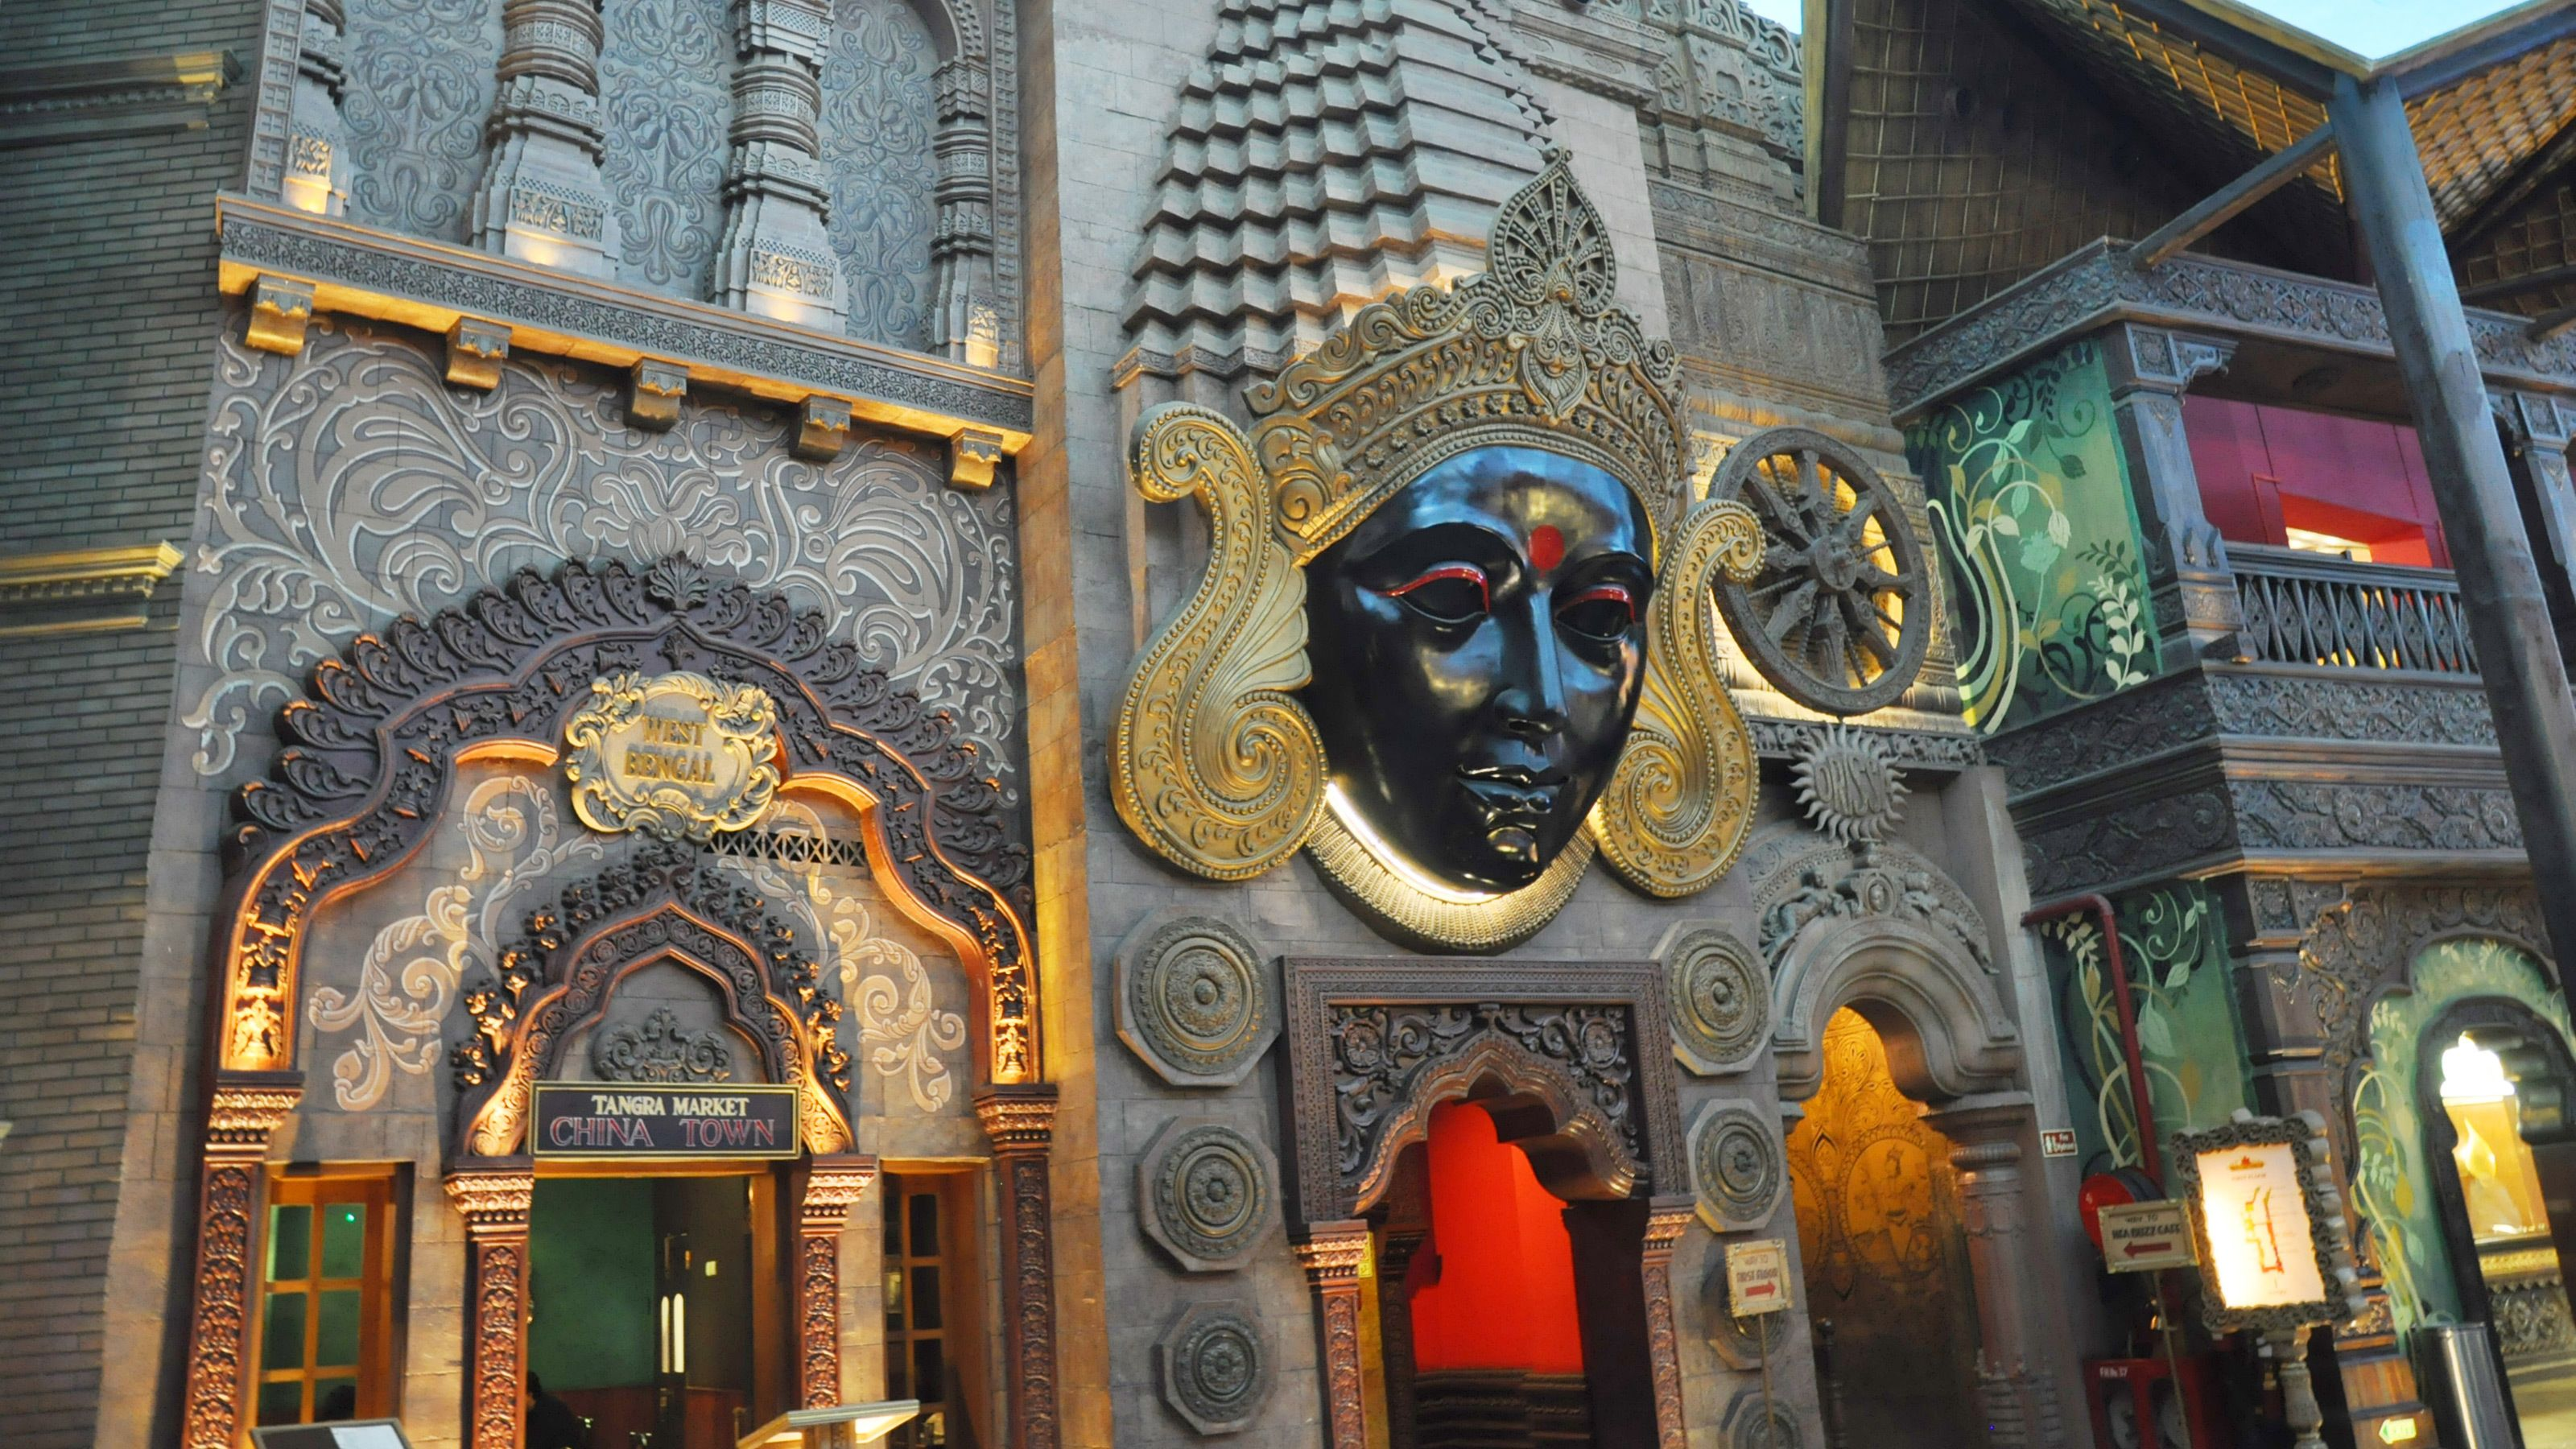 Ornate decorations at the Kingdom of Dreams